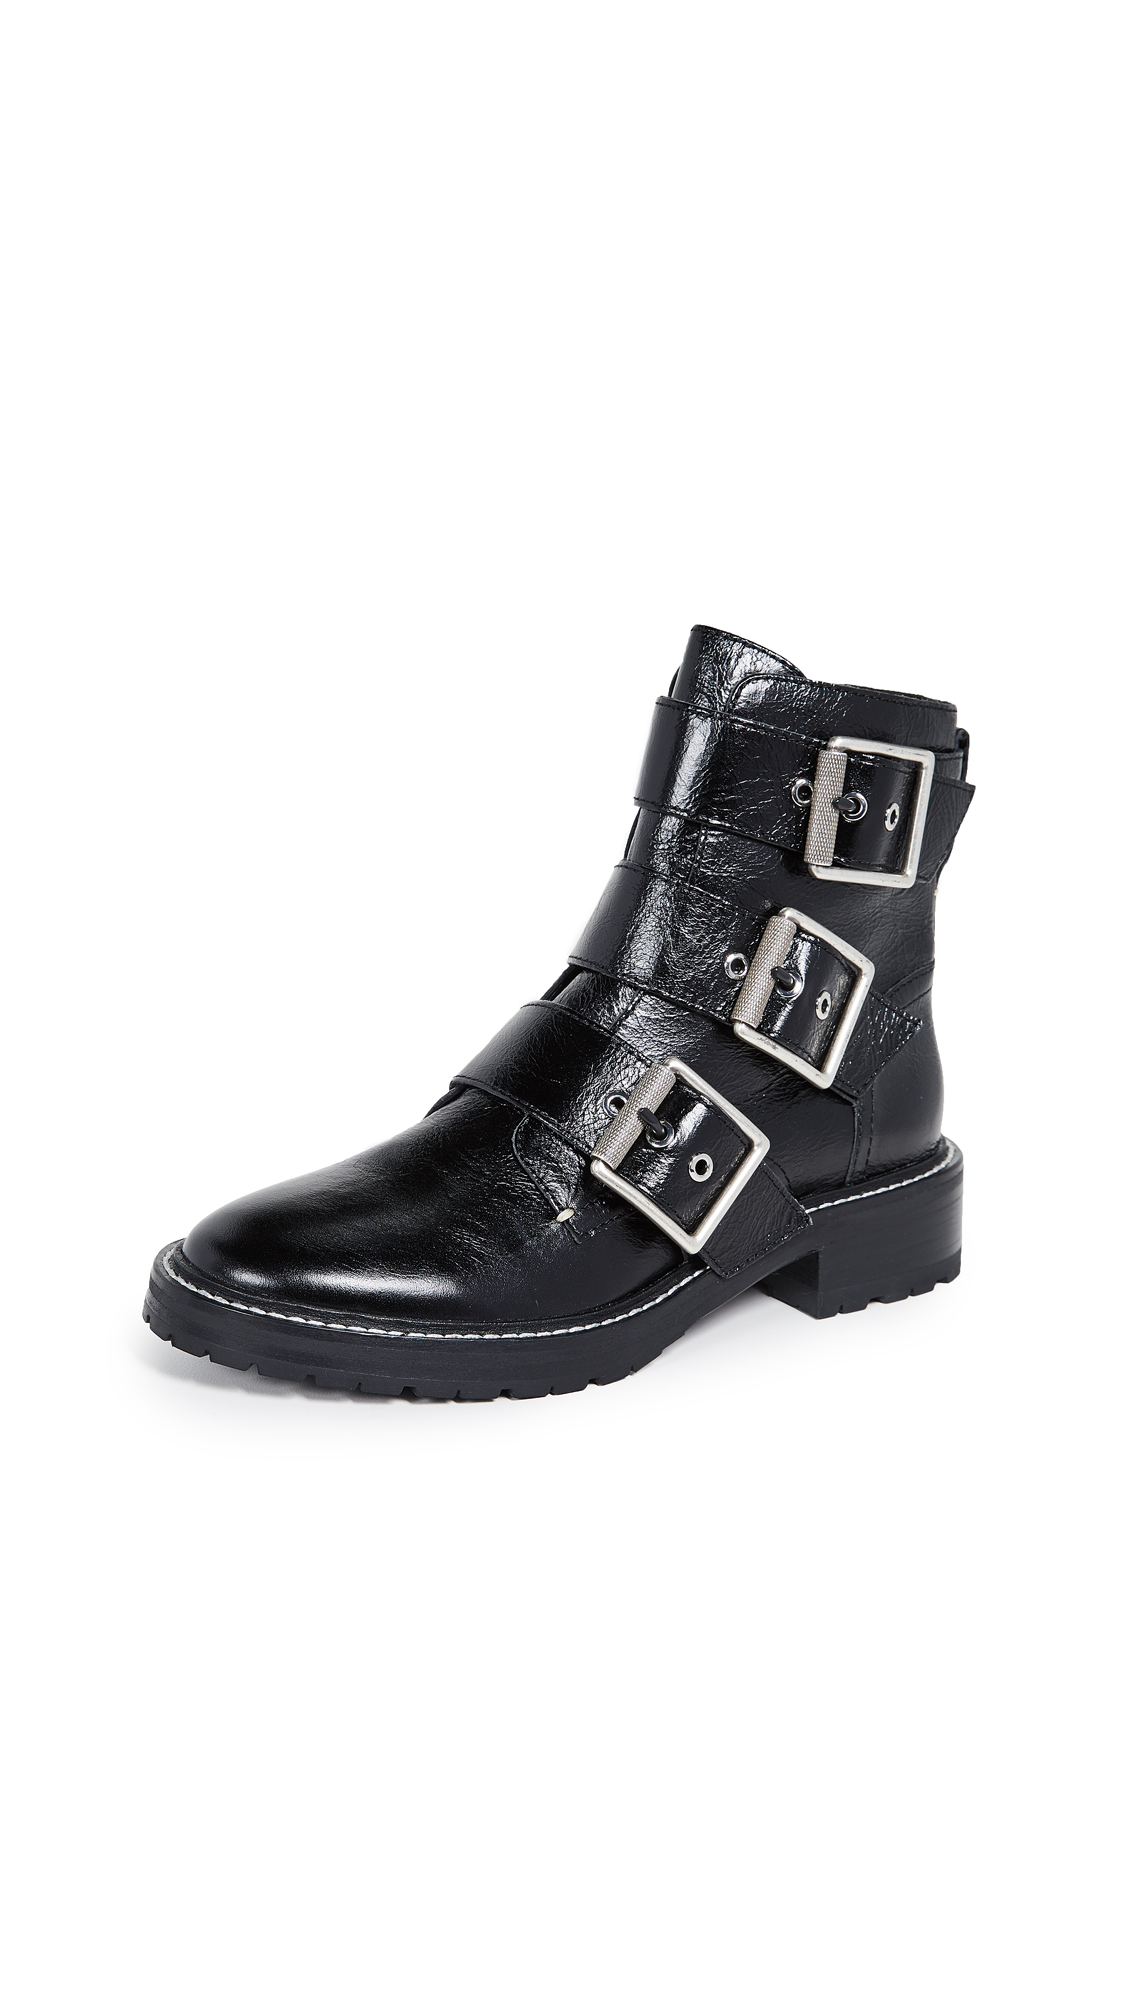 Rag & Bone Cannon Buckle Boots